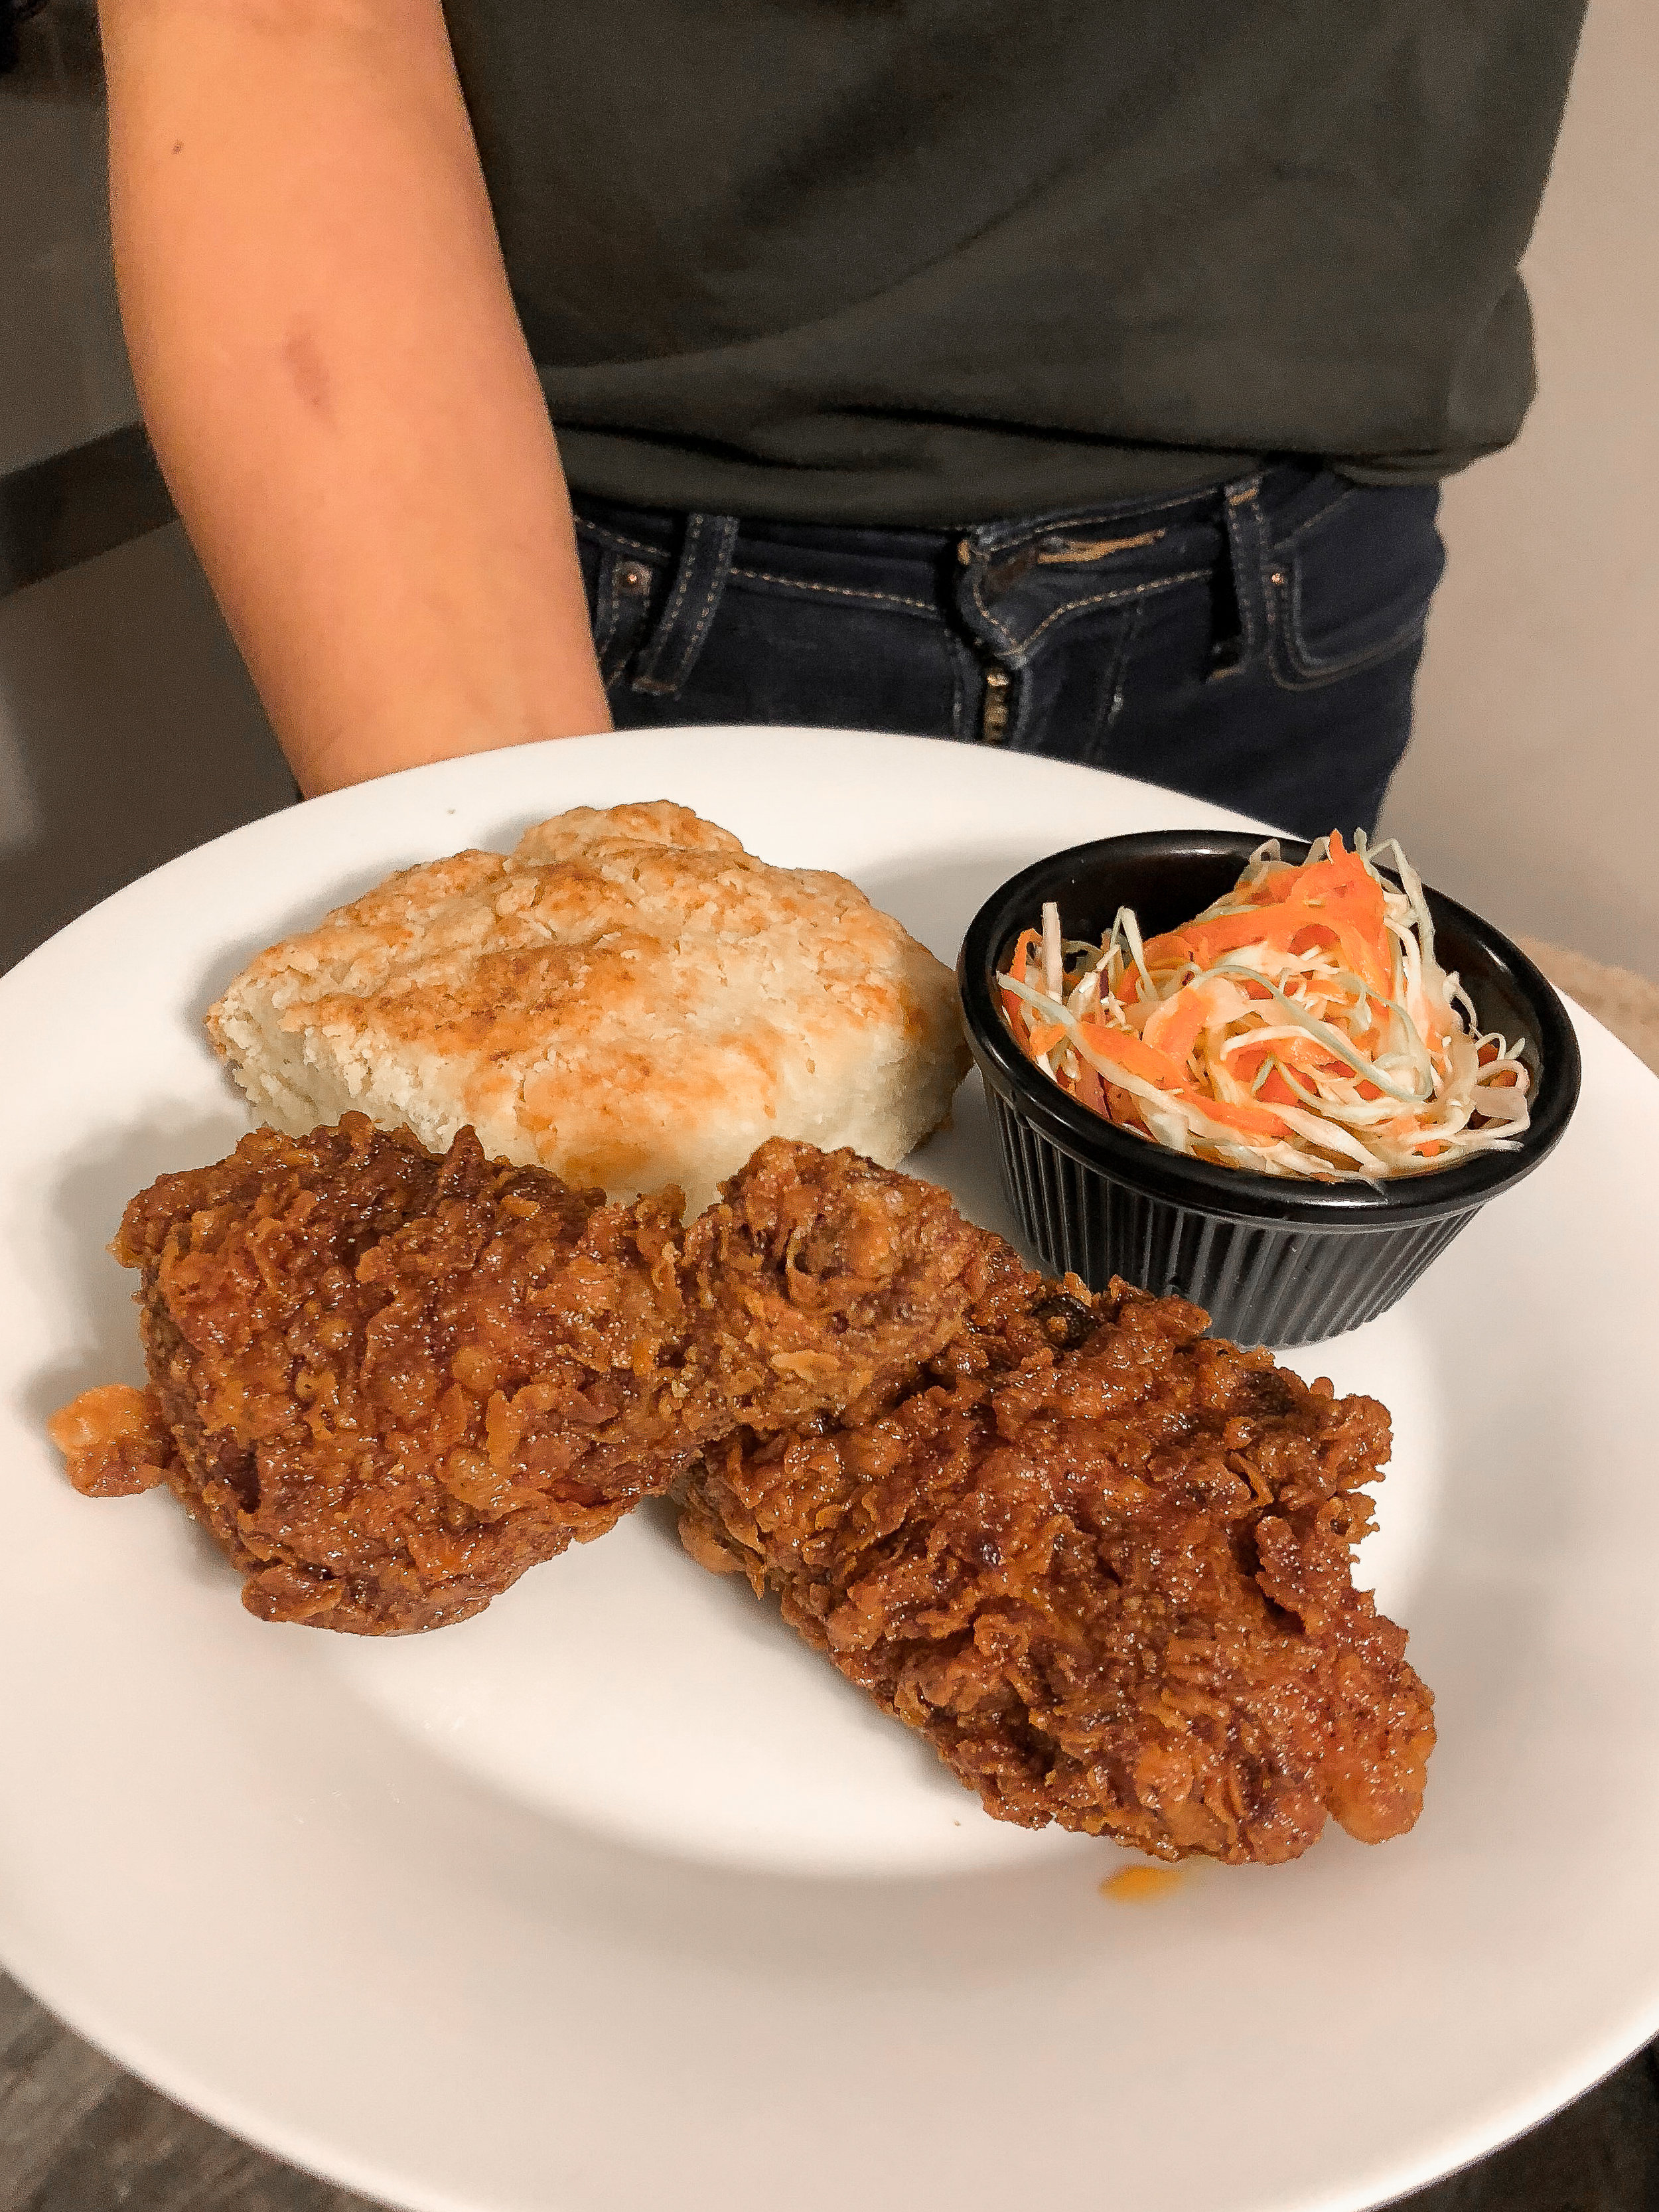 Nashville Hot Fried Chicken with a Biscuit &Slaw